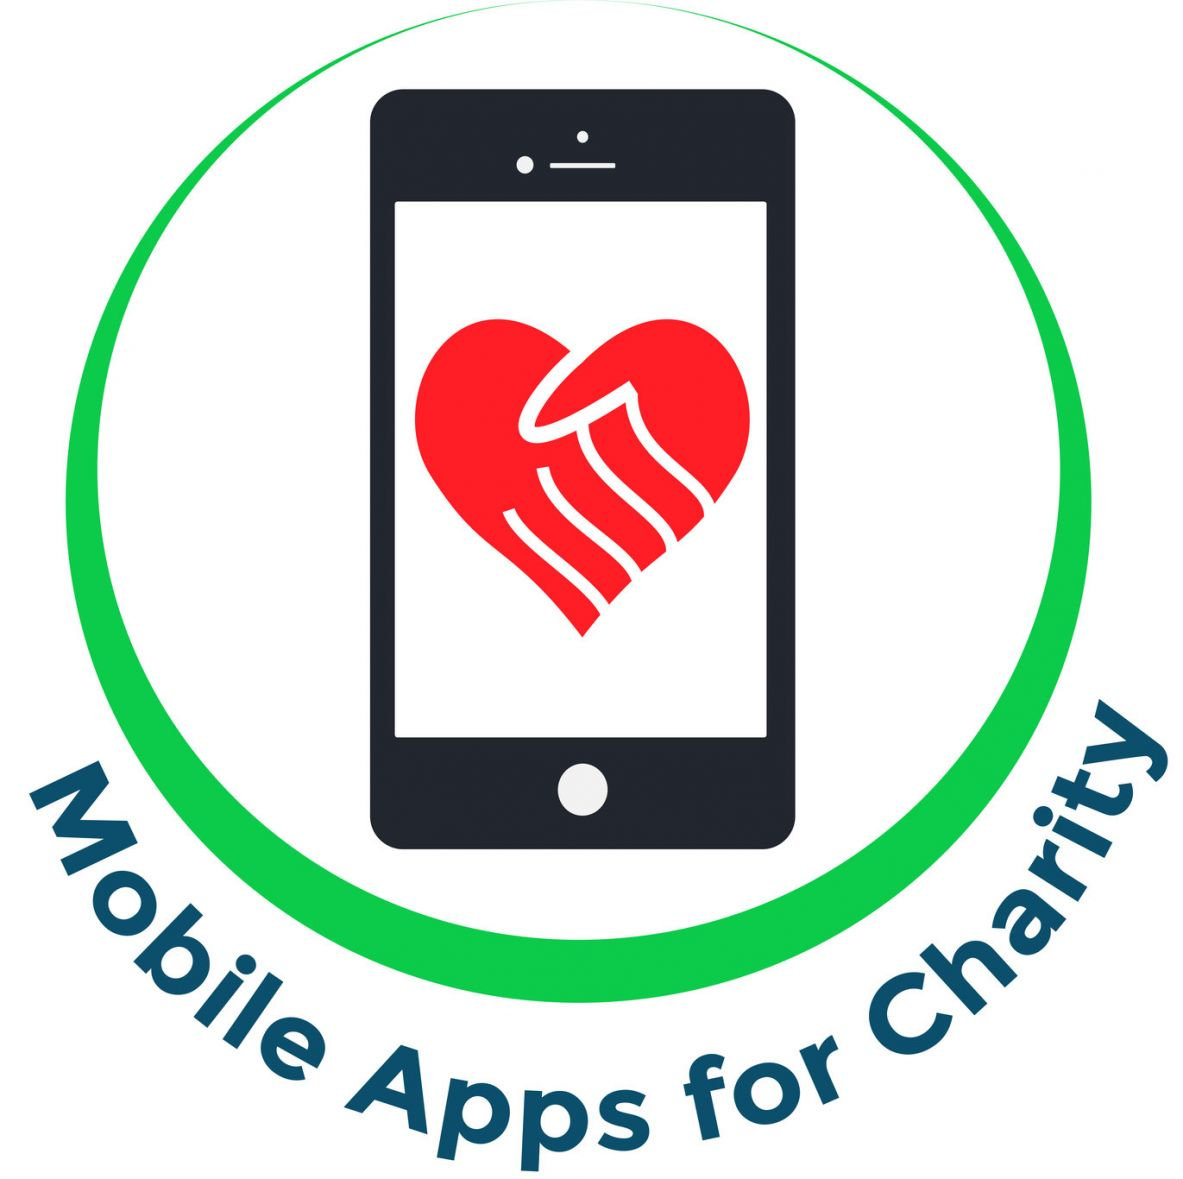 Tourbillon Alliance-Mobile Apps For Charity Logo